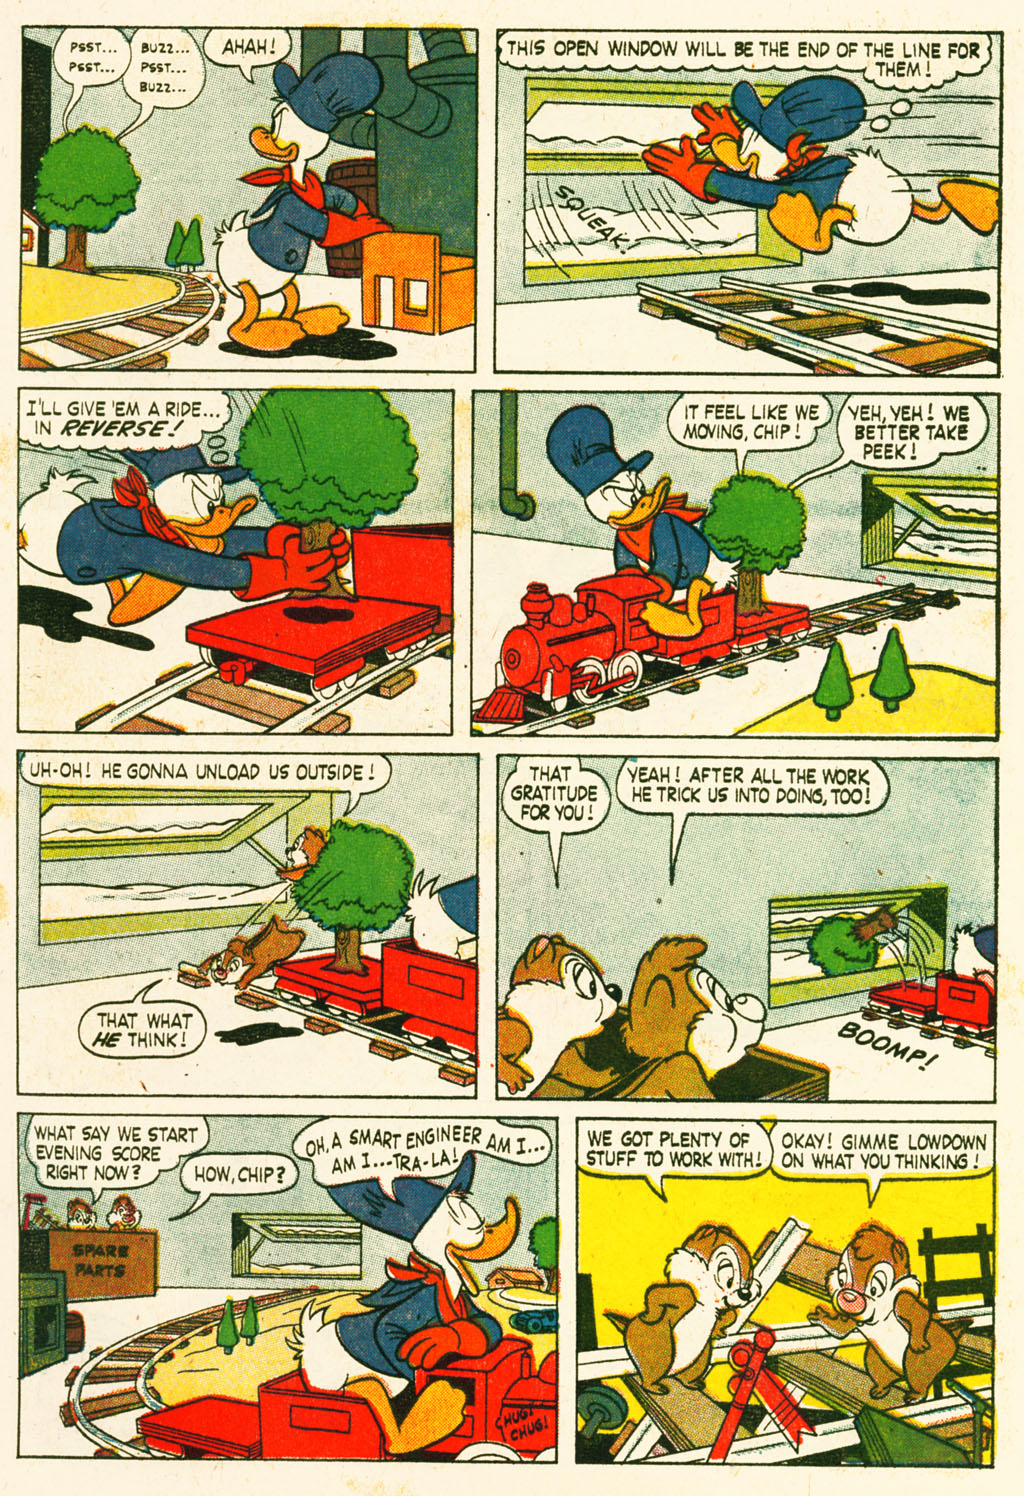 Walt Disneys Chip N Dale issue 20 - Page 7